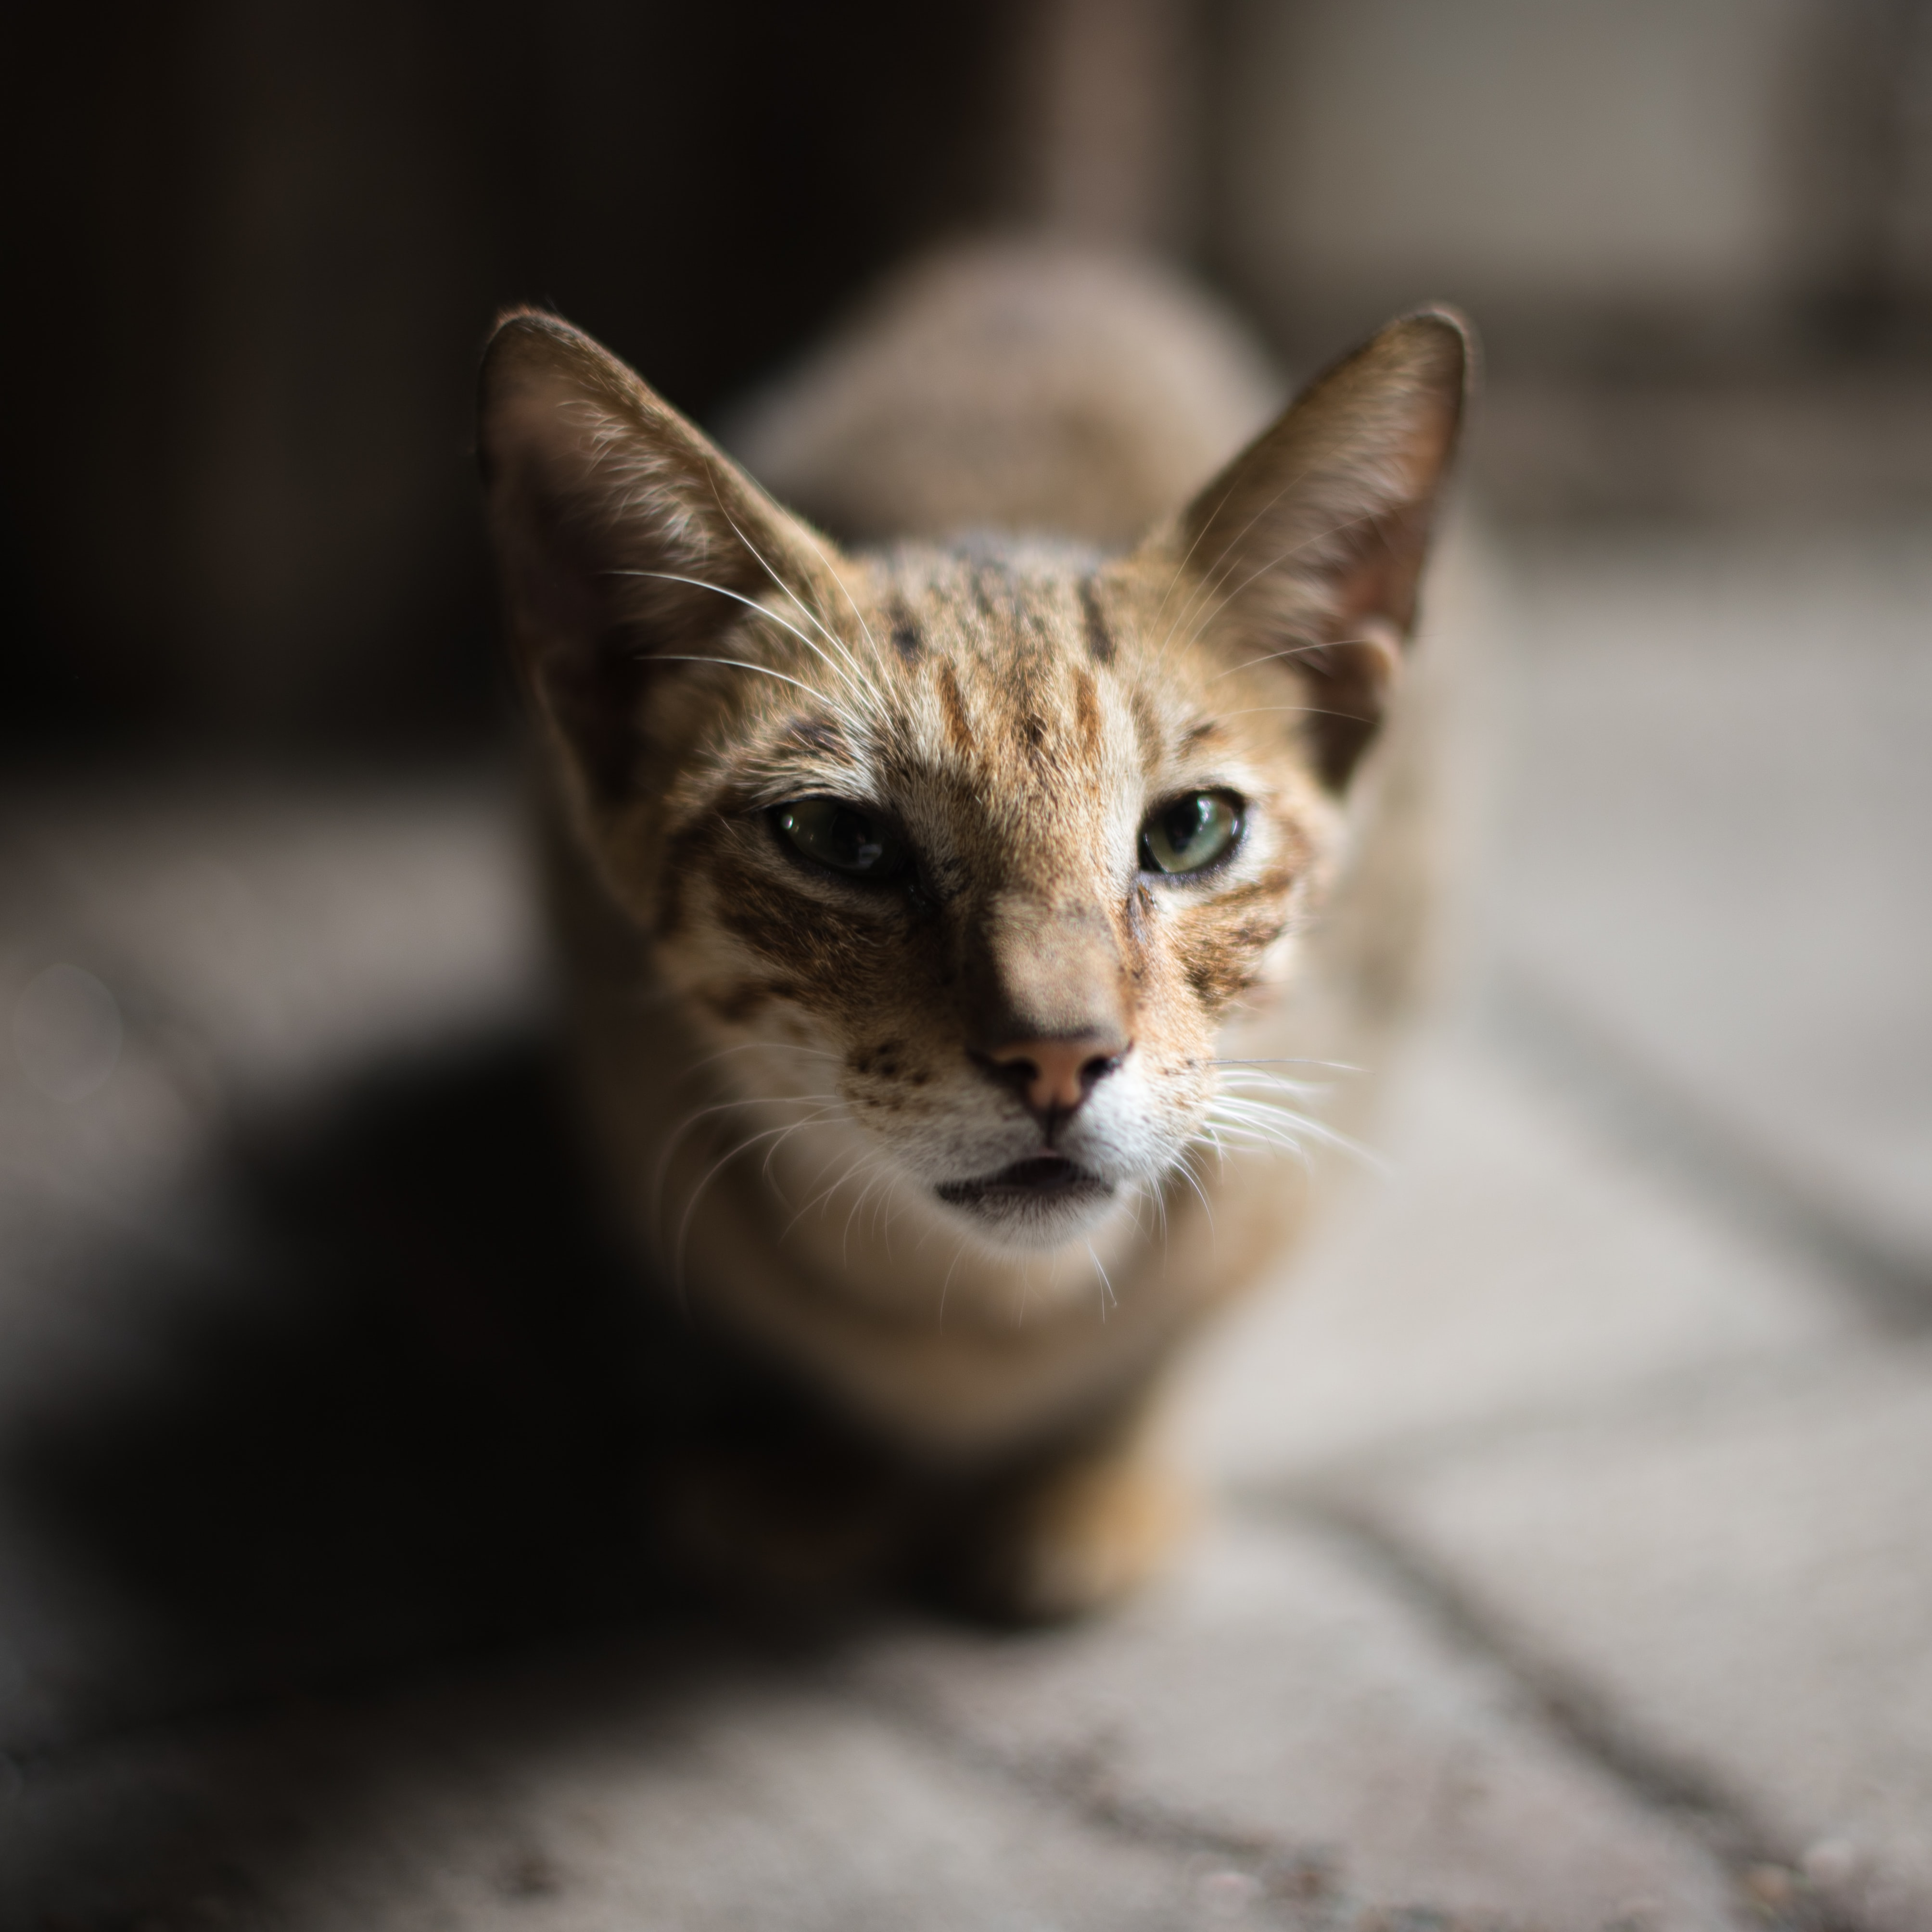 shallow focus photograpy of brown cat